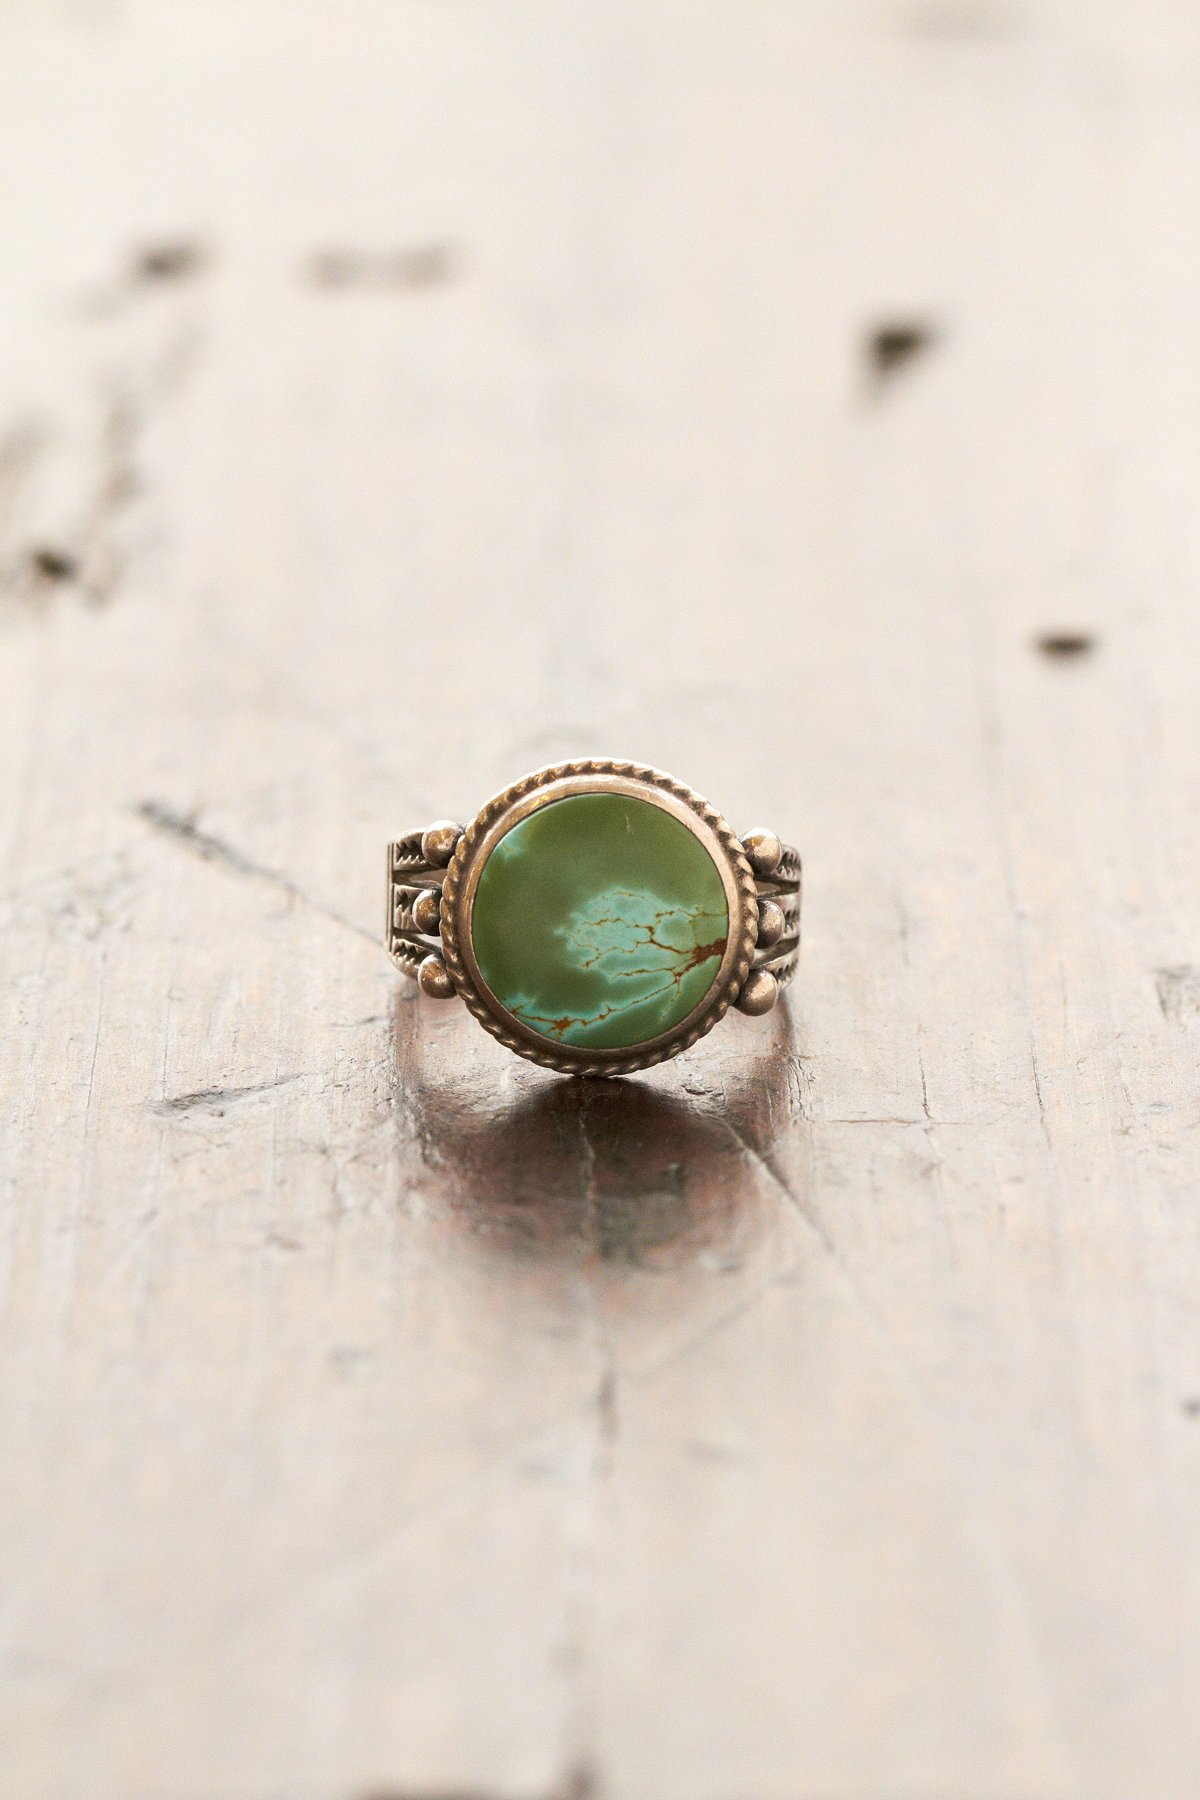 Vintage Handmade Natural Ring